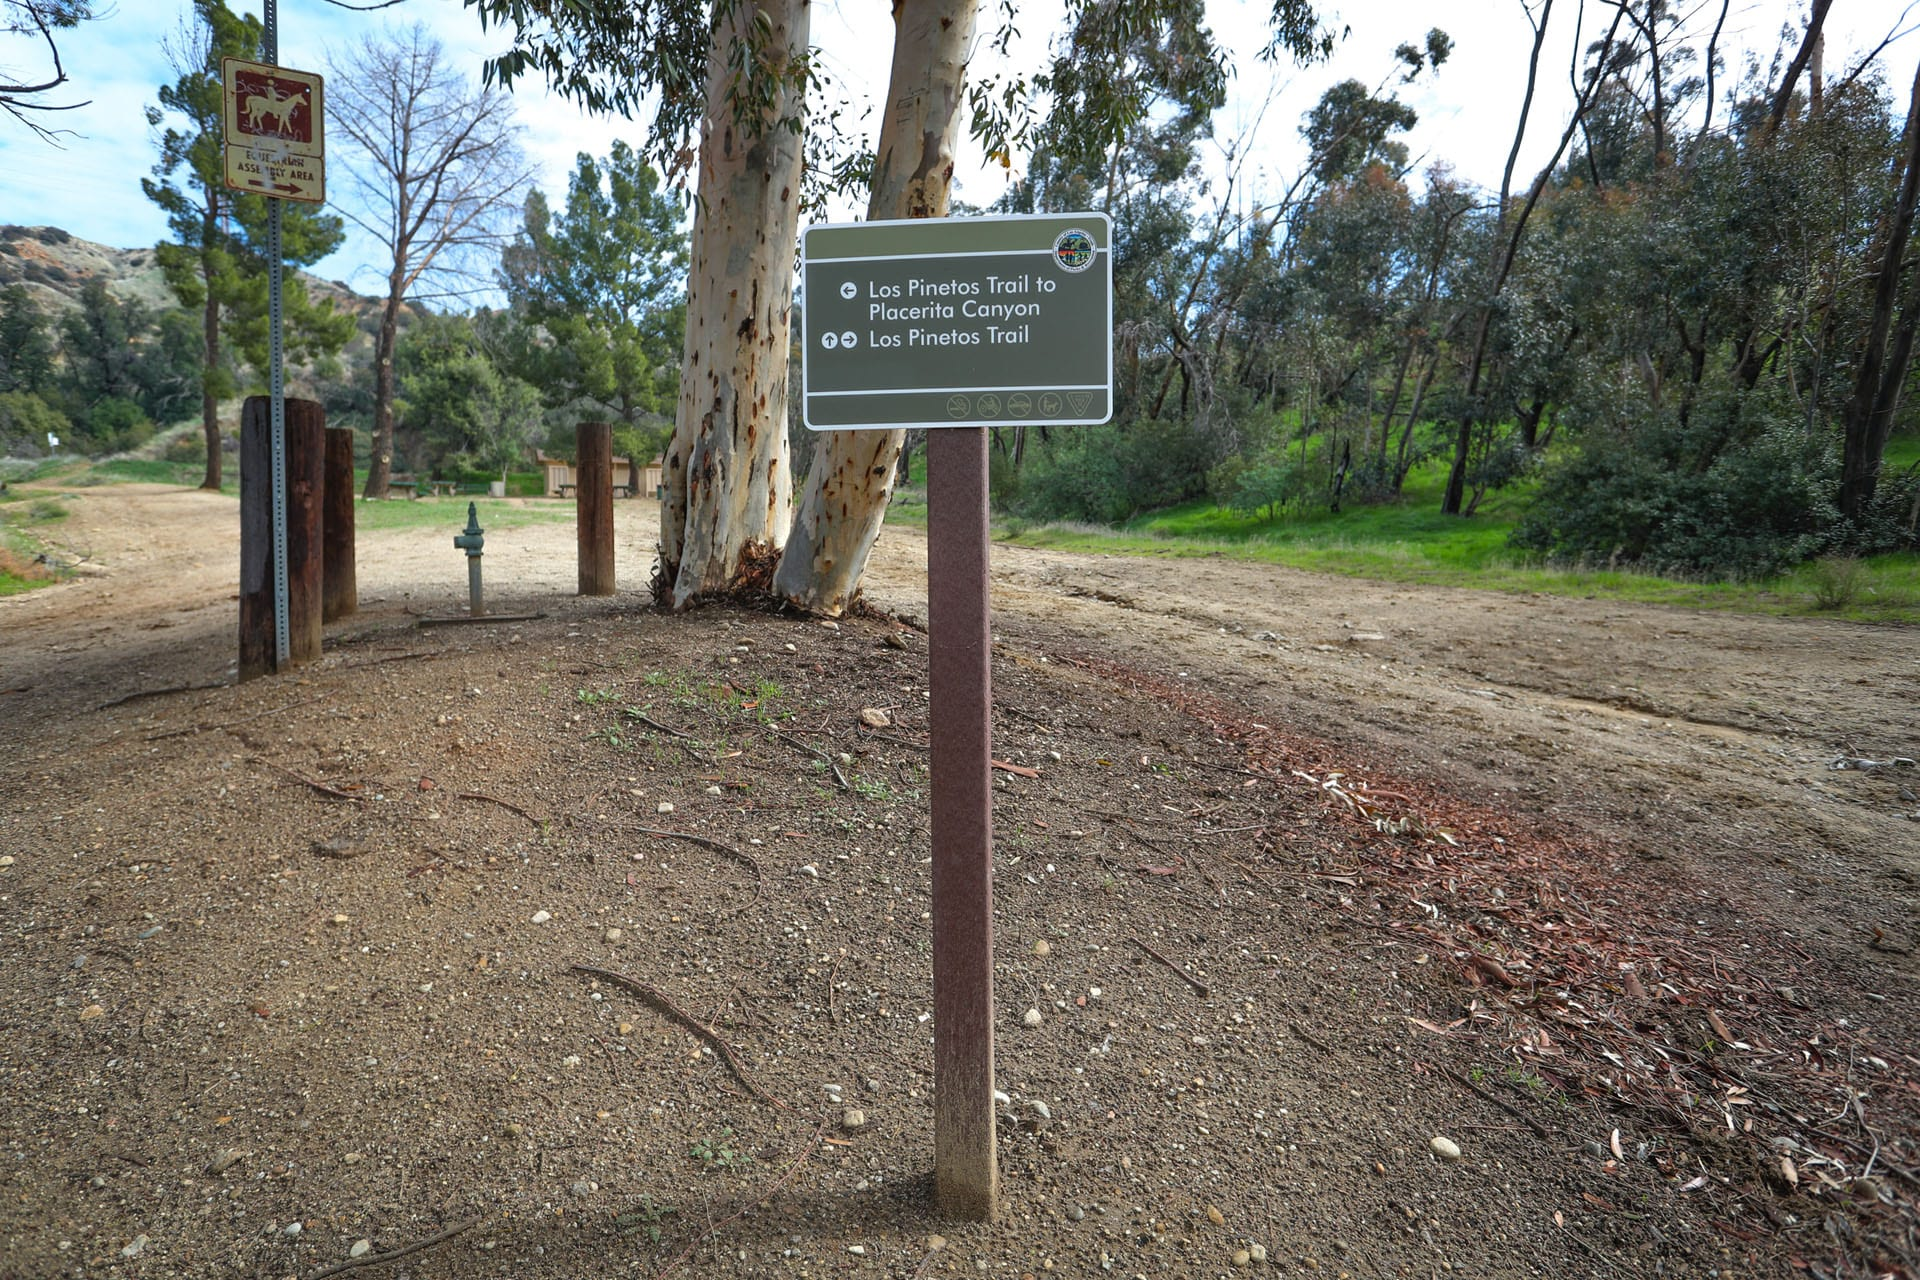 Directional sign among trees and a dirt paths